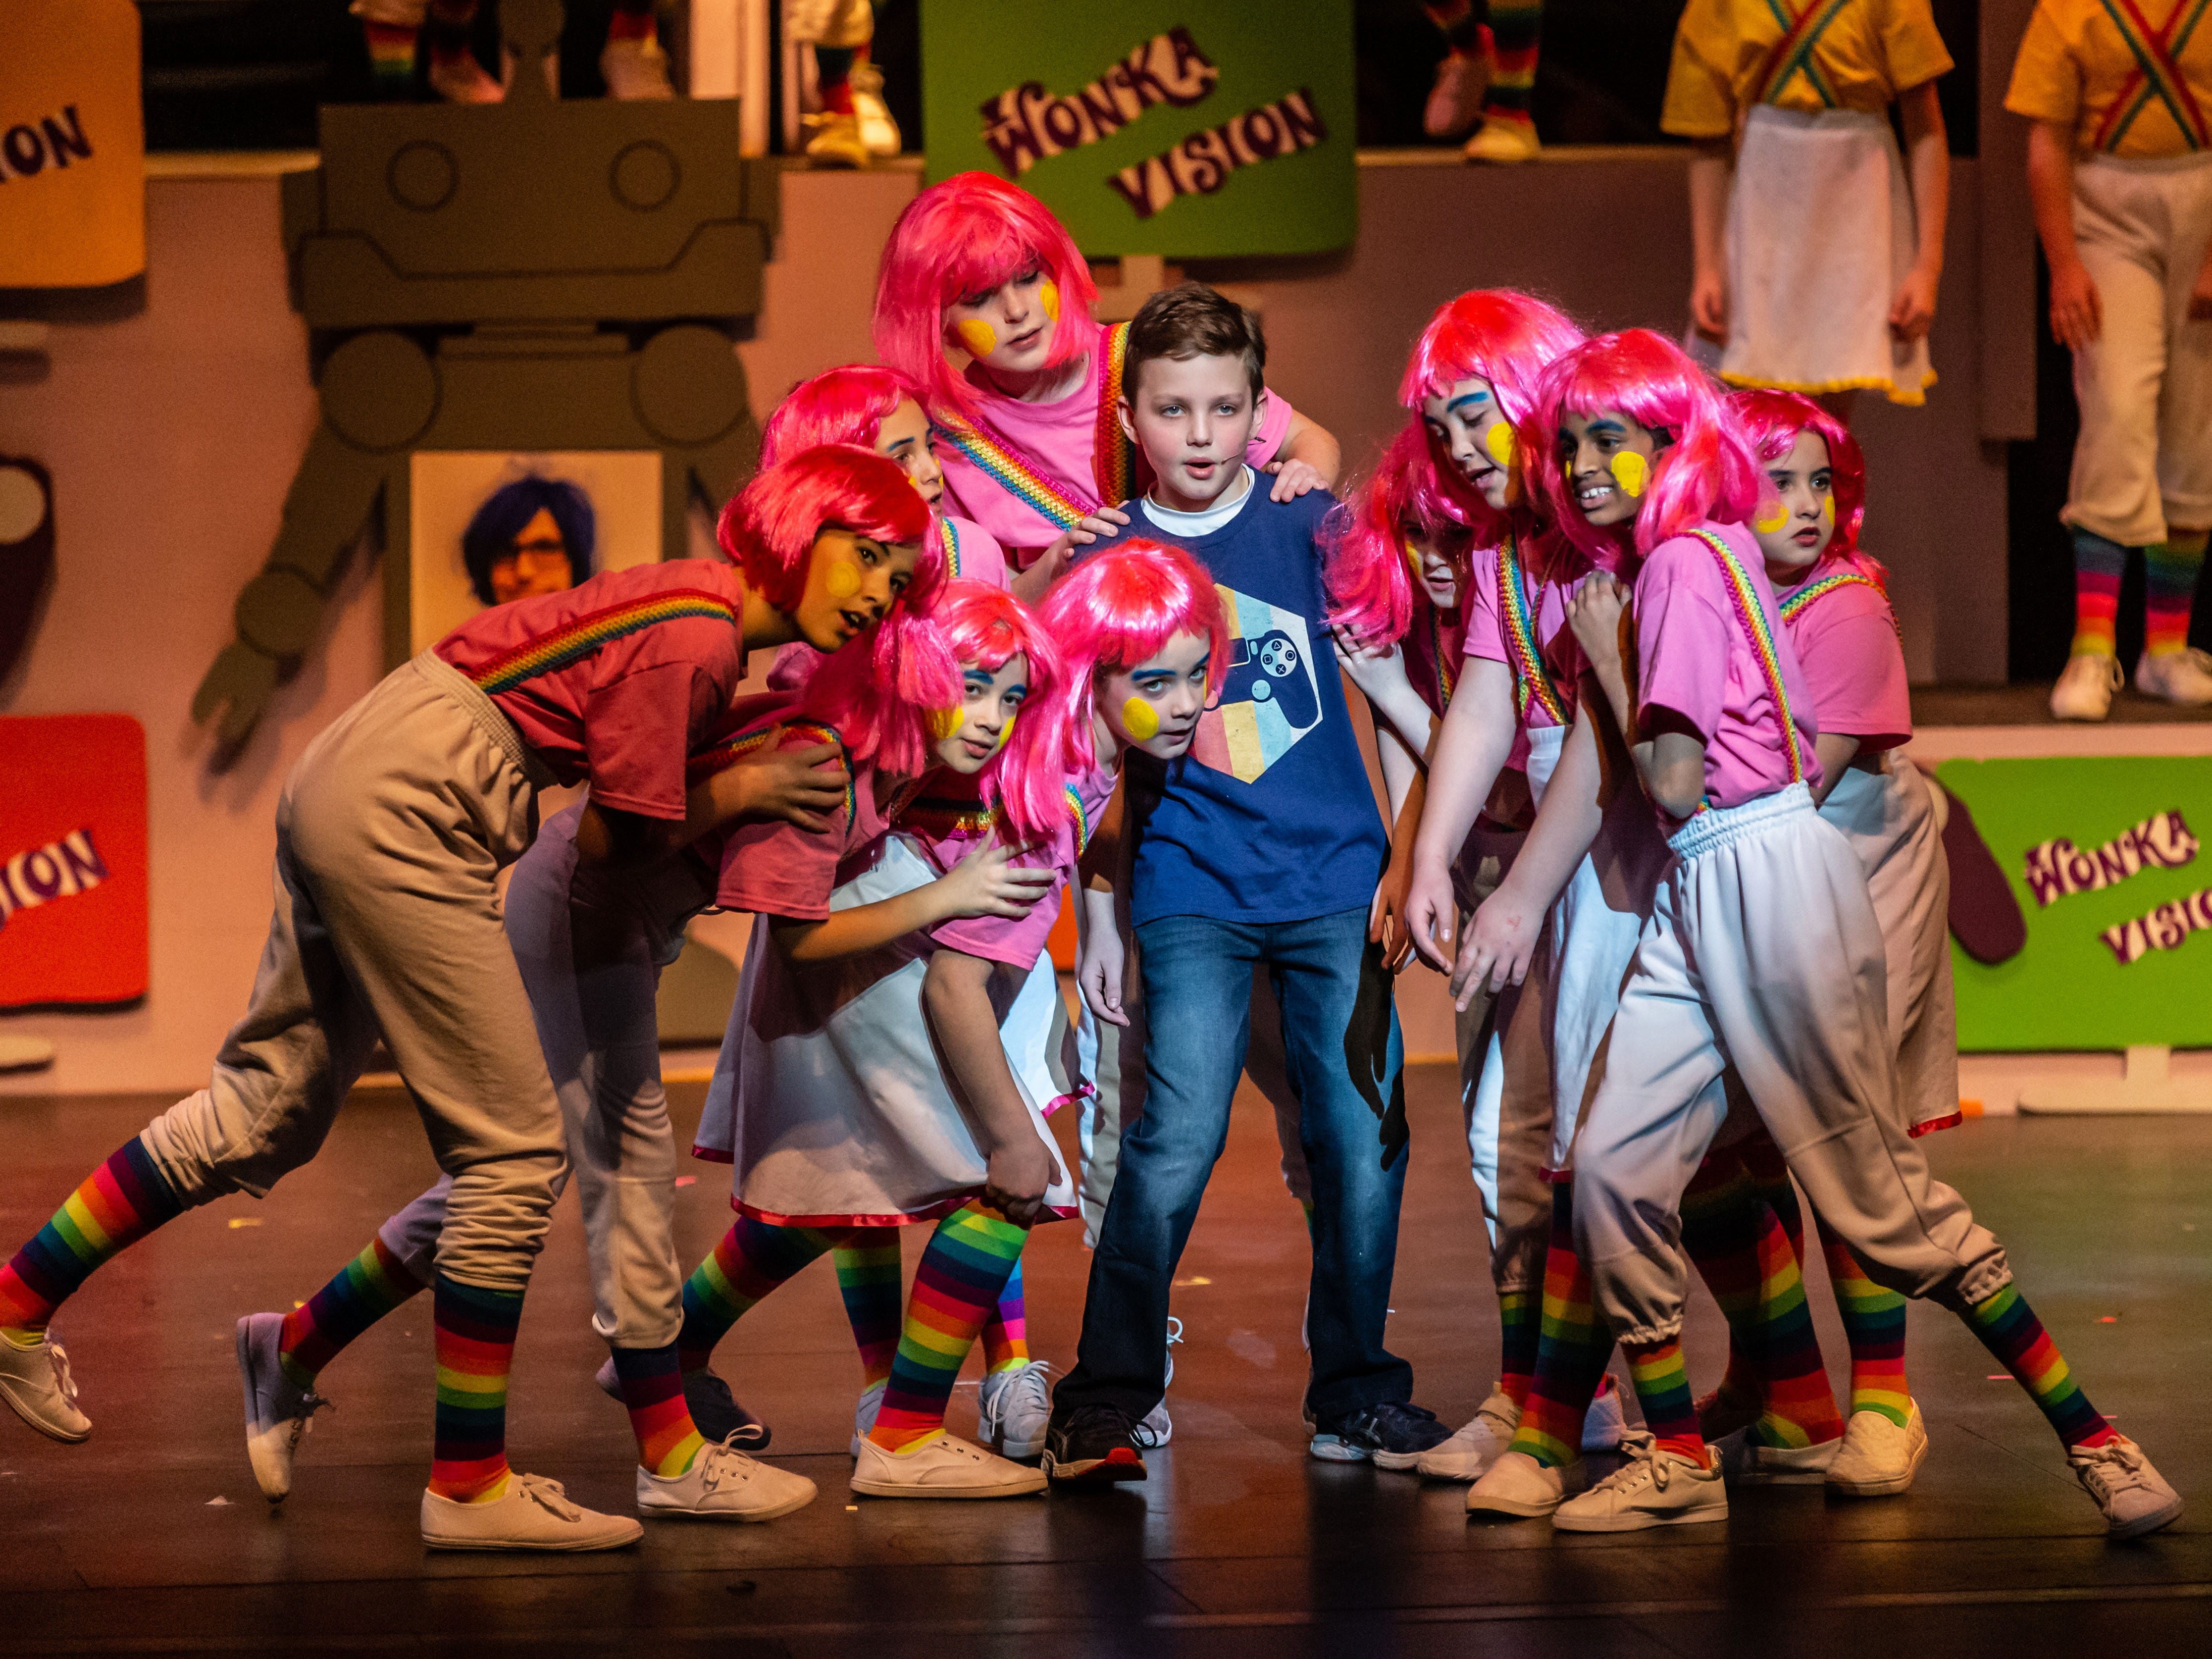 Brookfield Elementary fourth grader, Jacob Brunner, portrays Mike Teavee in a scene from Roald Dahl's Willy Wonka Jr. during rehearsal at the Sharon Lynne Wilson Center for the Arts in Brookfield on Saturday, March 2, 2019. Public performances are at 7 p.m. on March 2 and 2 p.m. on March 3.